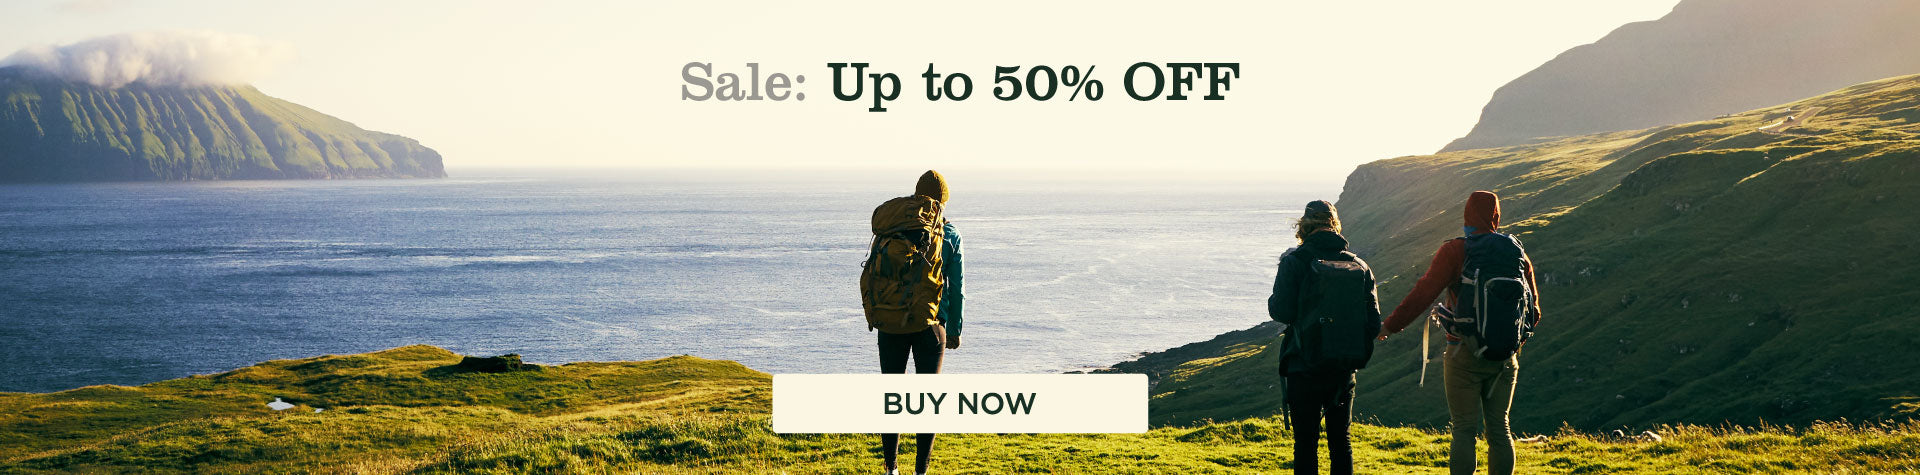 Sale: Enjoy up to 50% OFF these products!